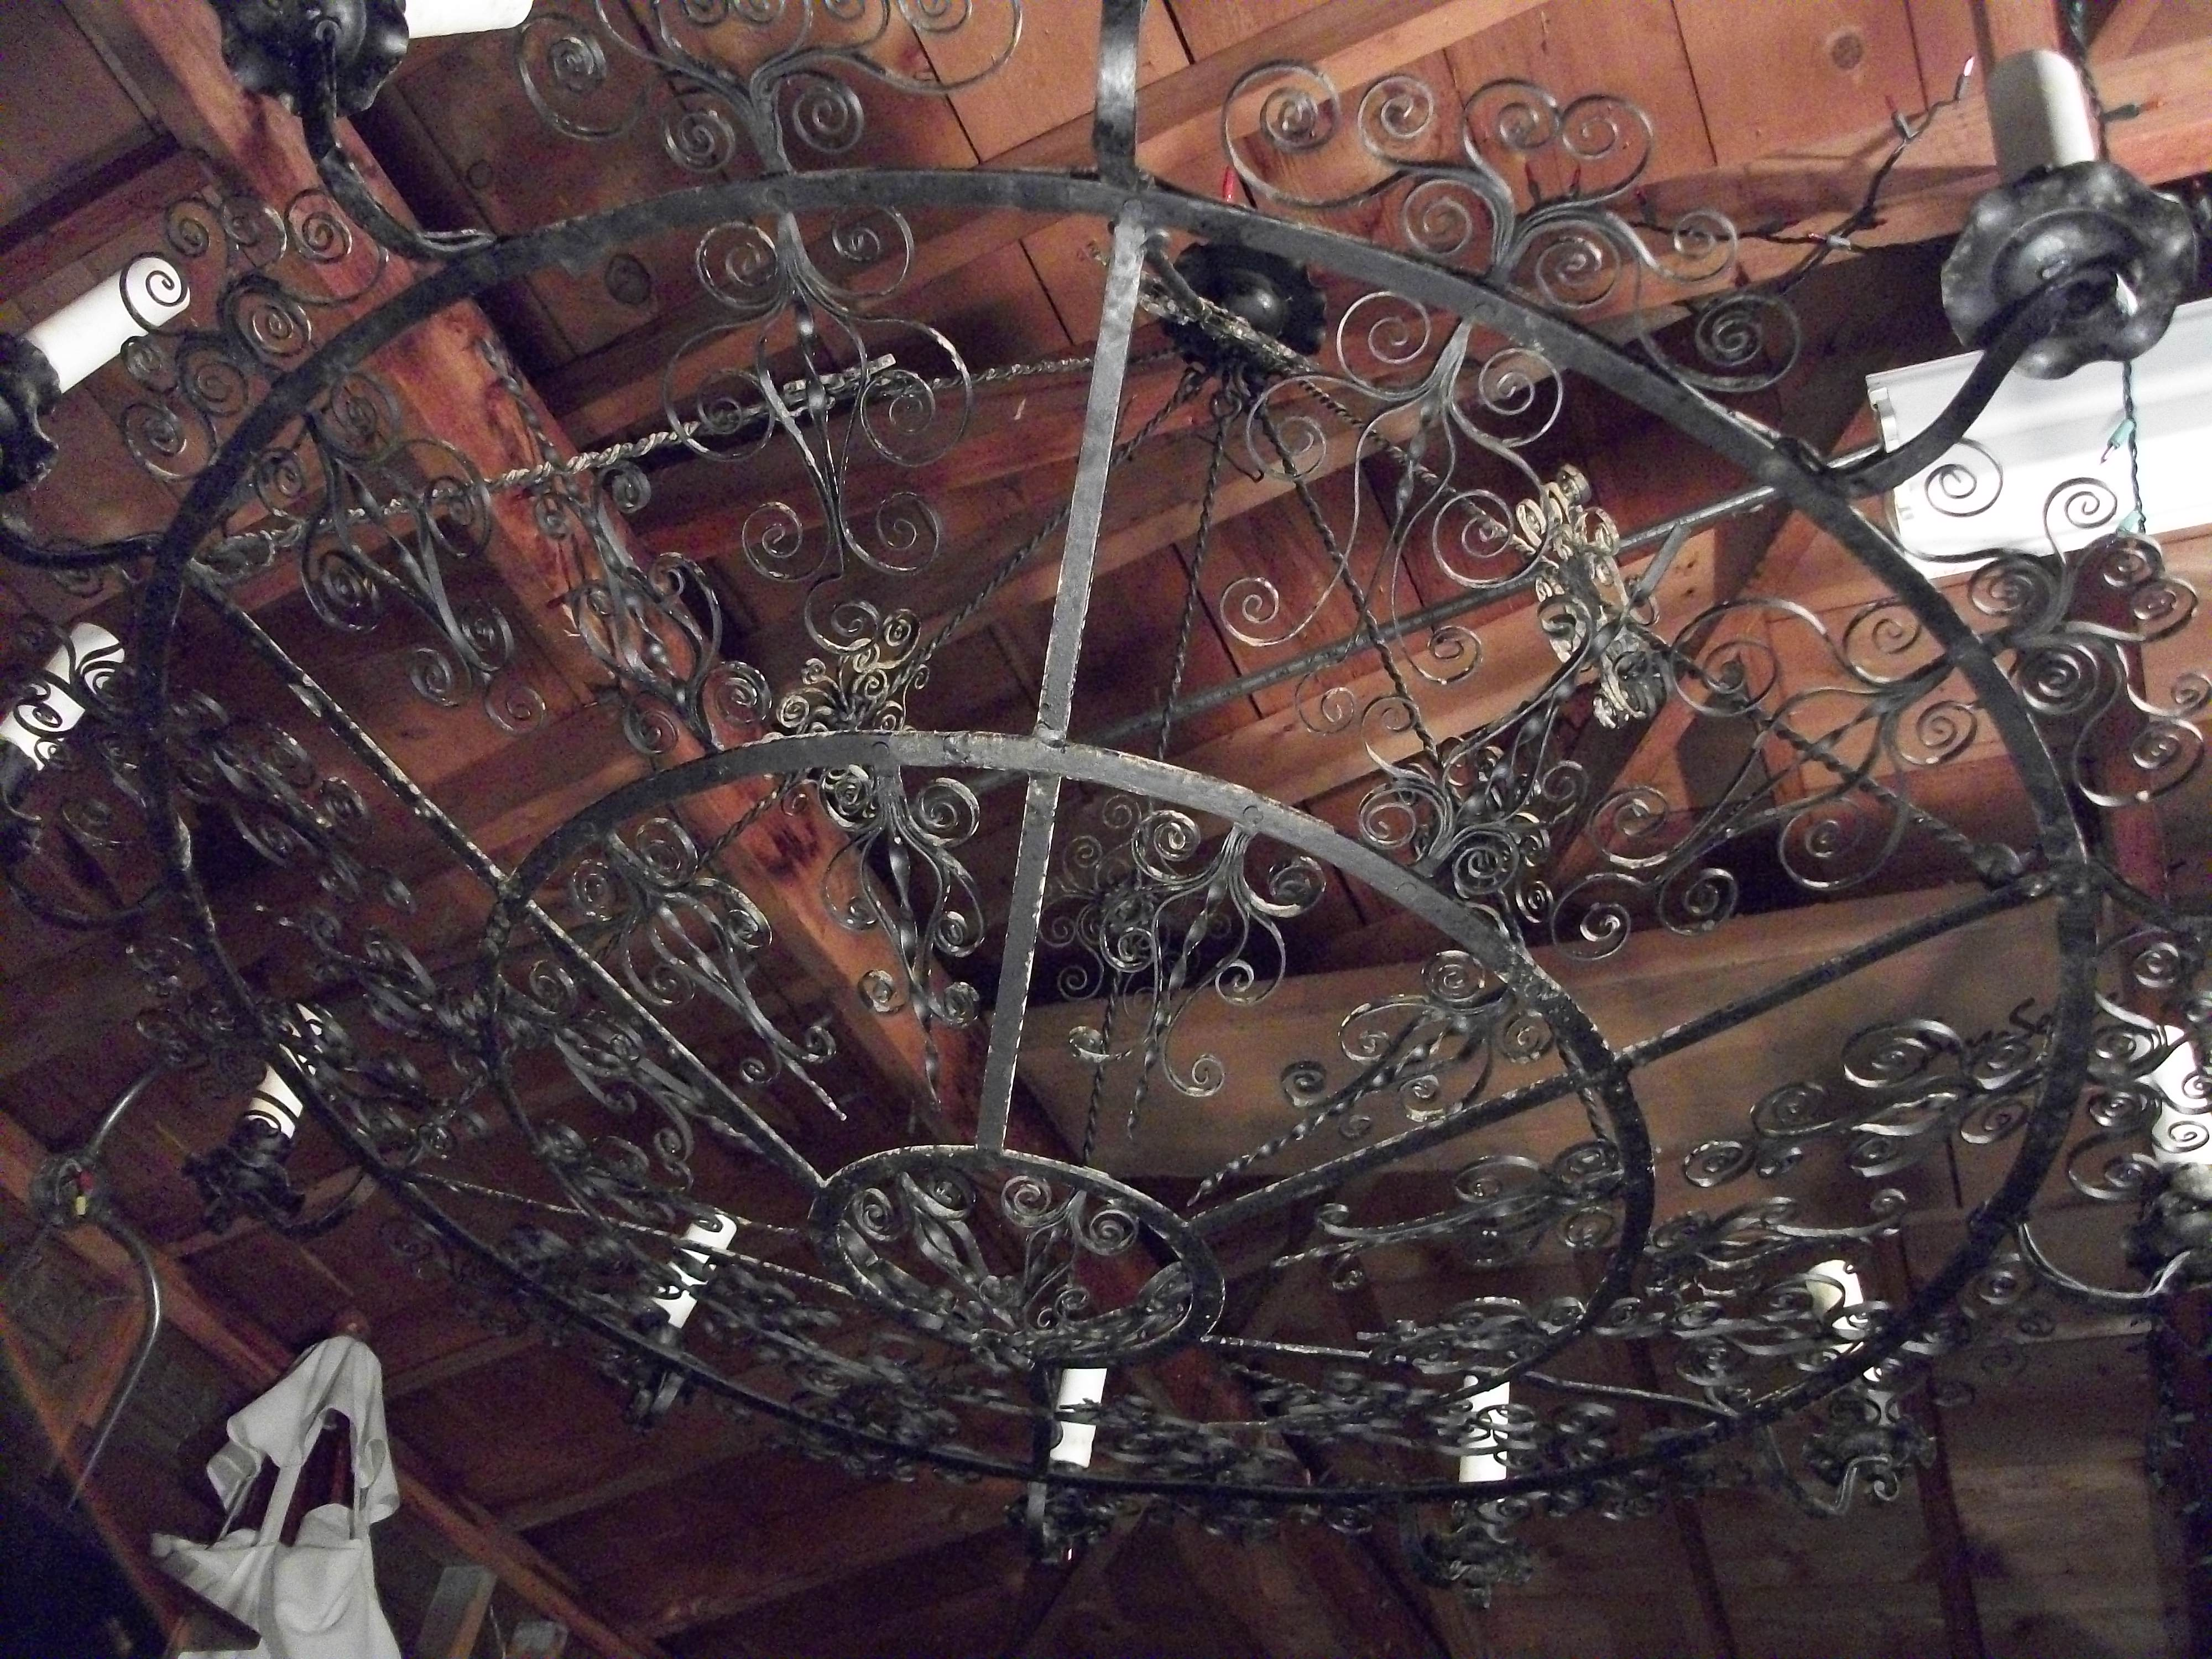 Antique wrought iron chandelier from about the 1920s made in israel antique wrought iron chandelier from about the 1920s made in israelnverted to electric with wiring in the 1950s i have photos any idea mozeypictures Image collections